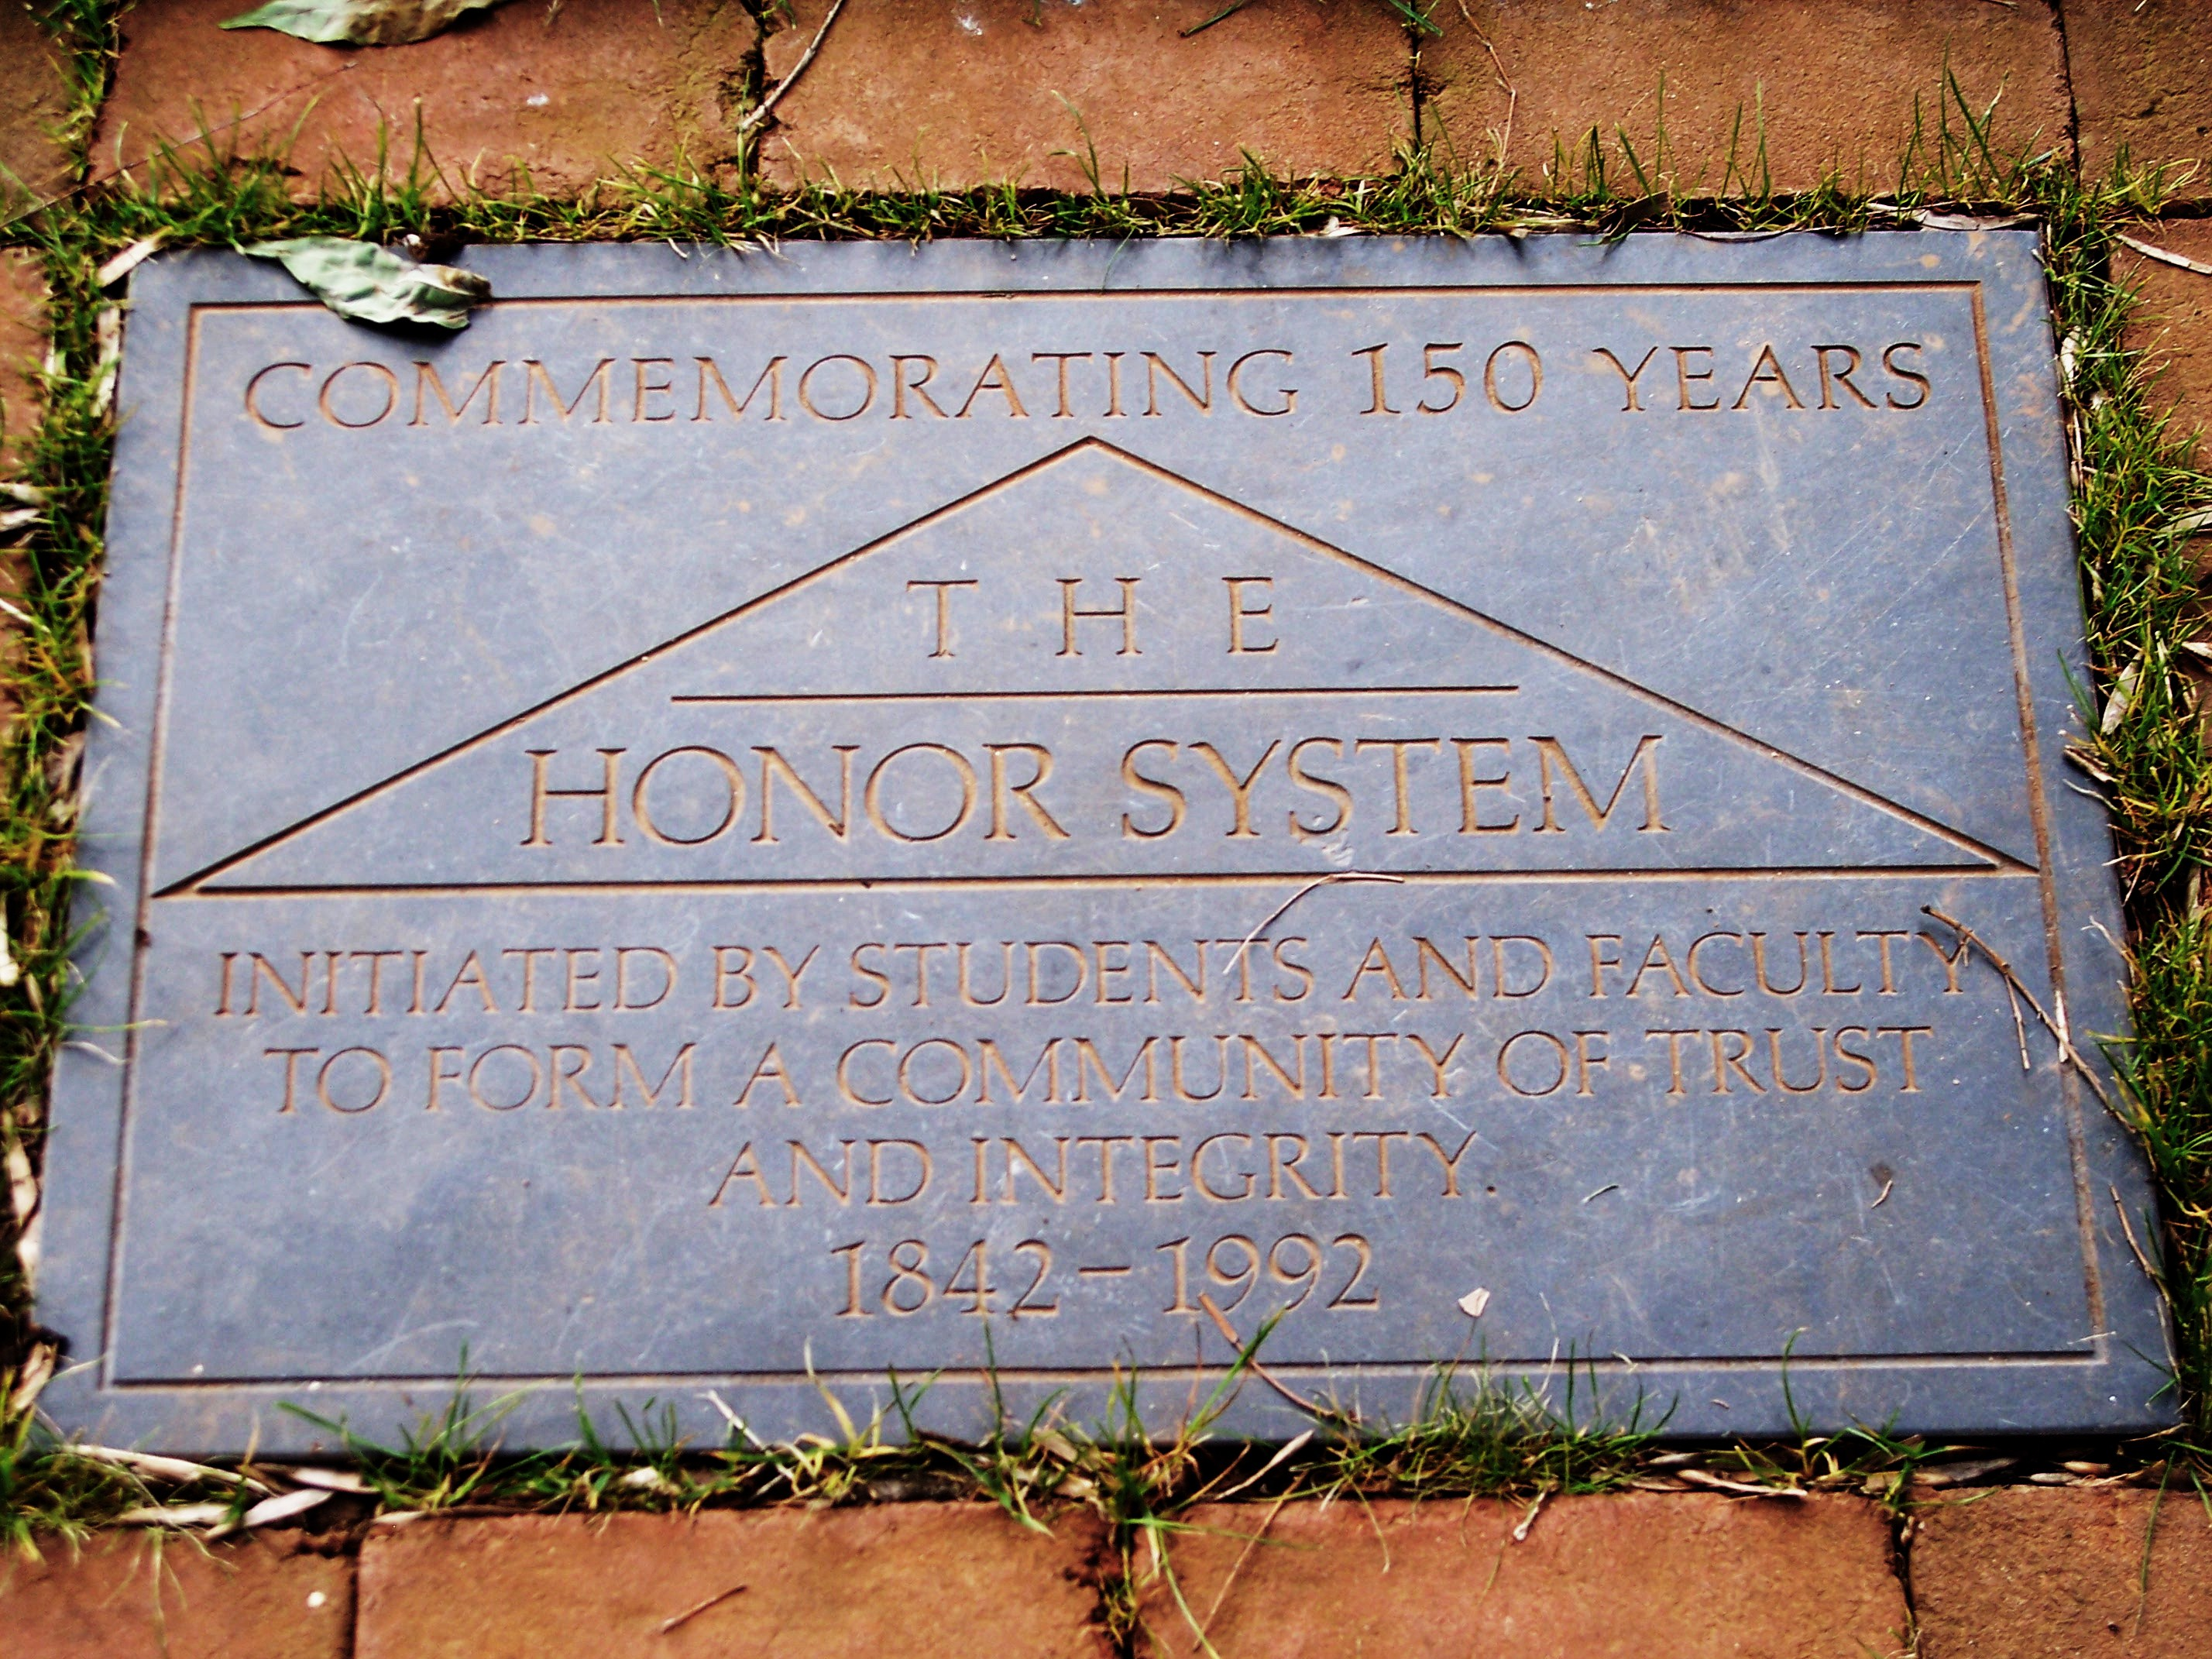 A plaque regarding 150 years of the Honor System, placed on the Lawn in 1992